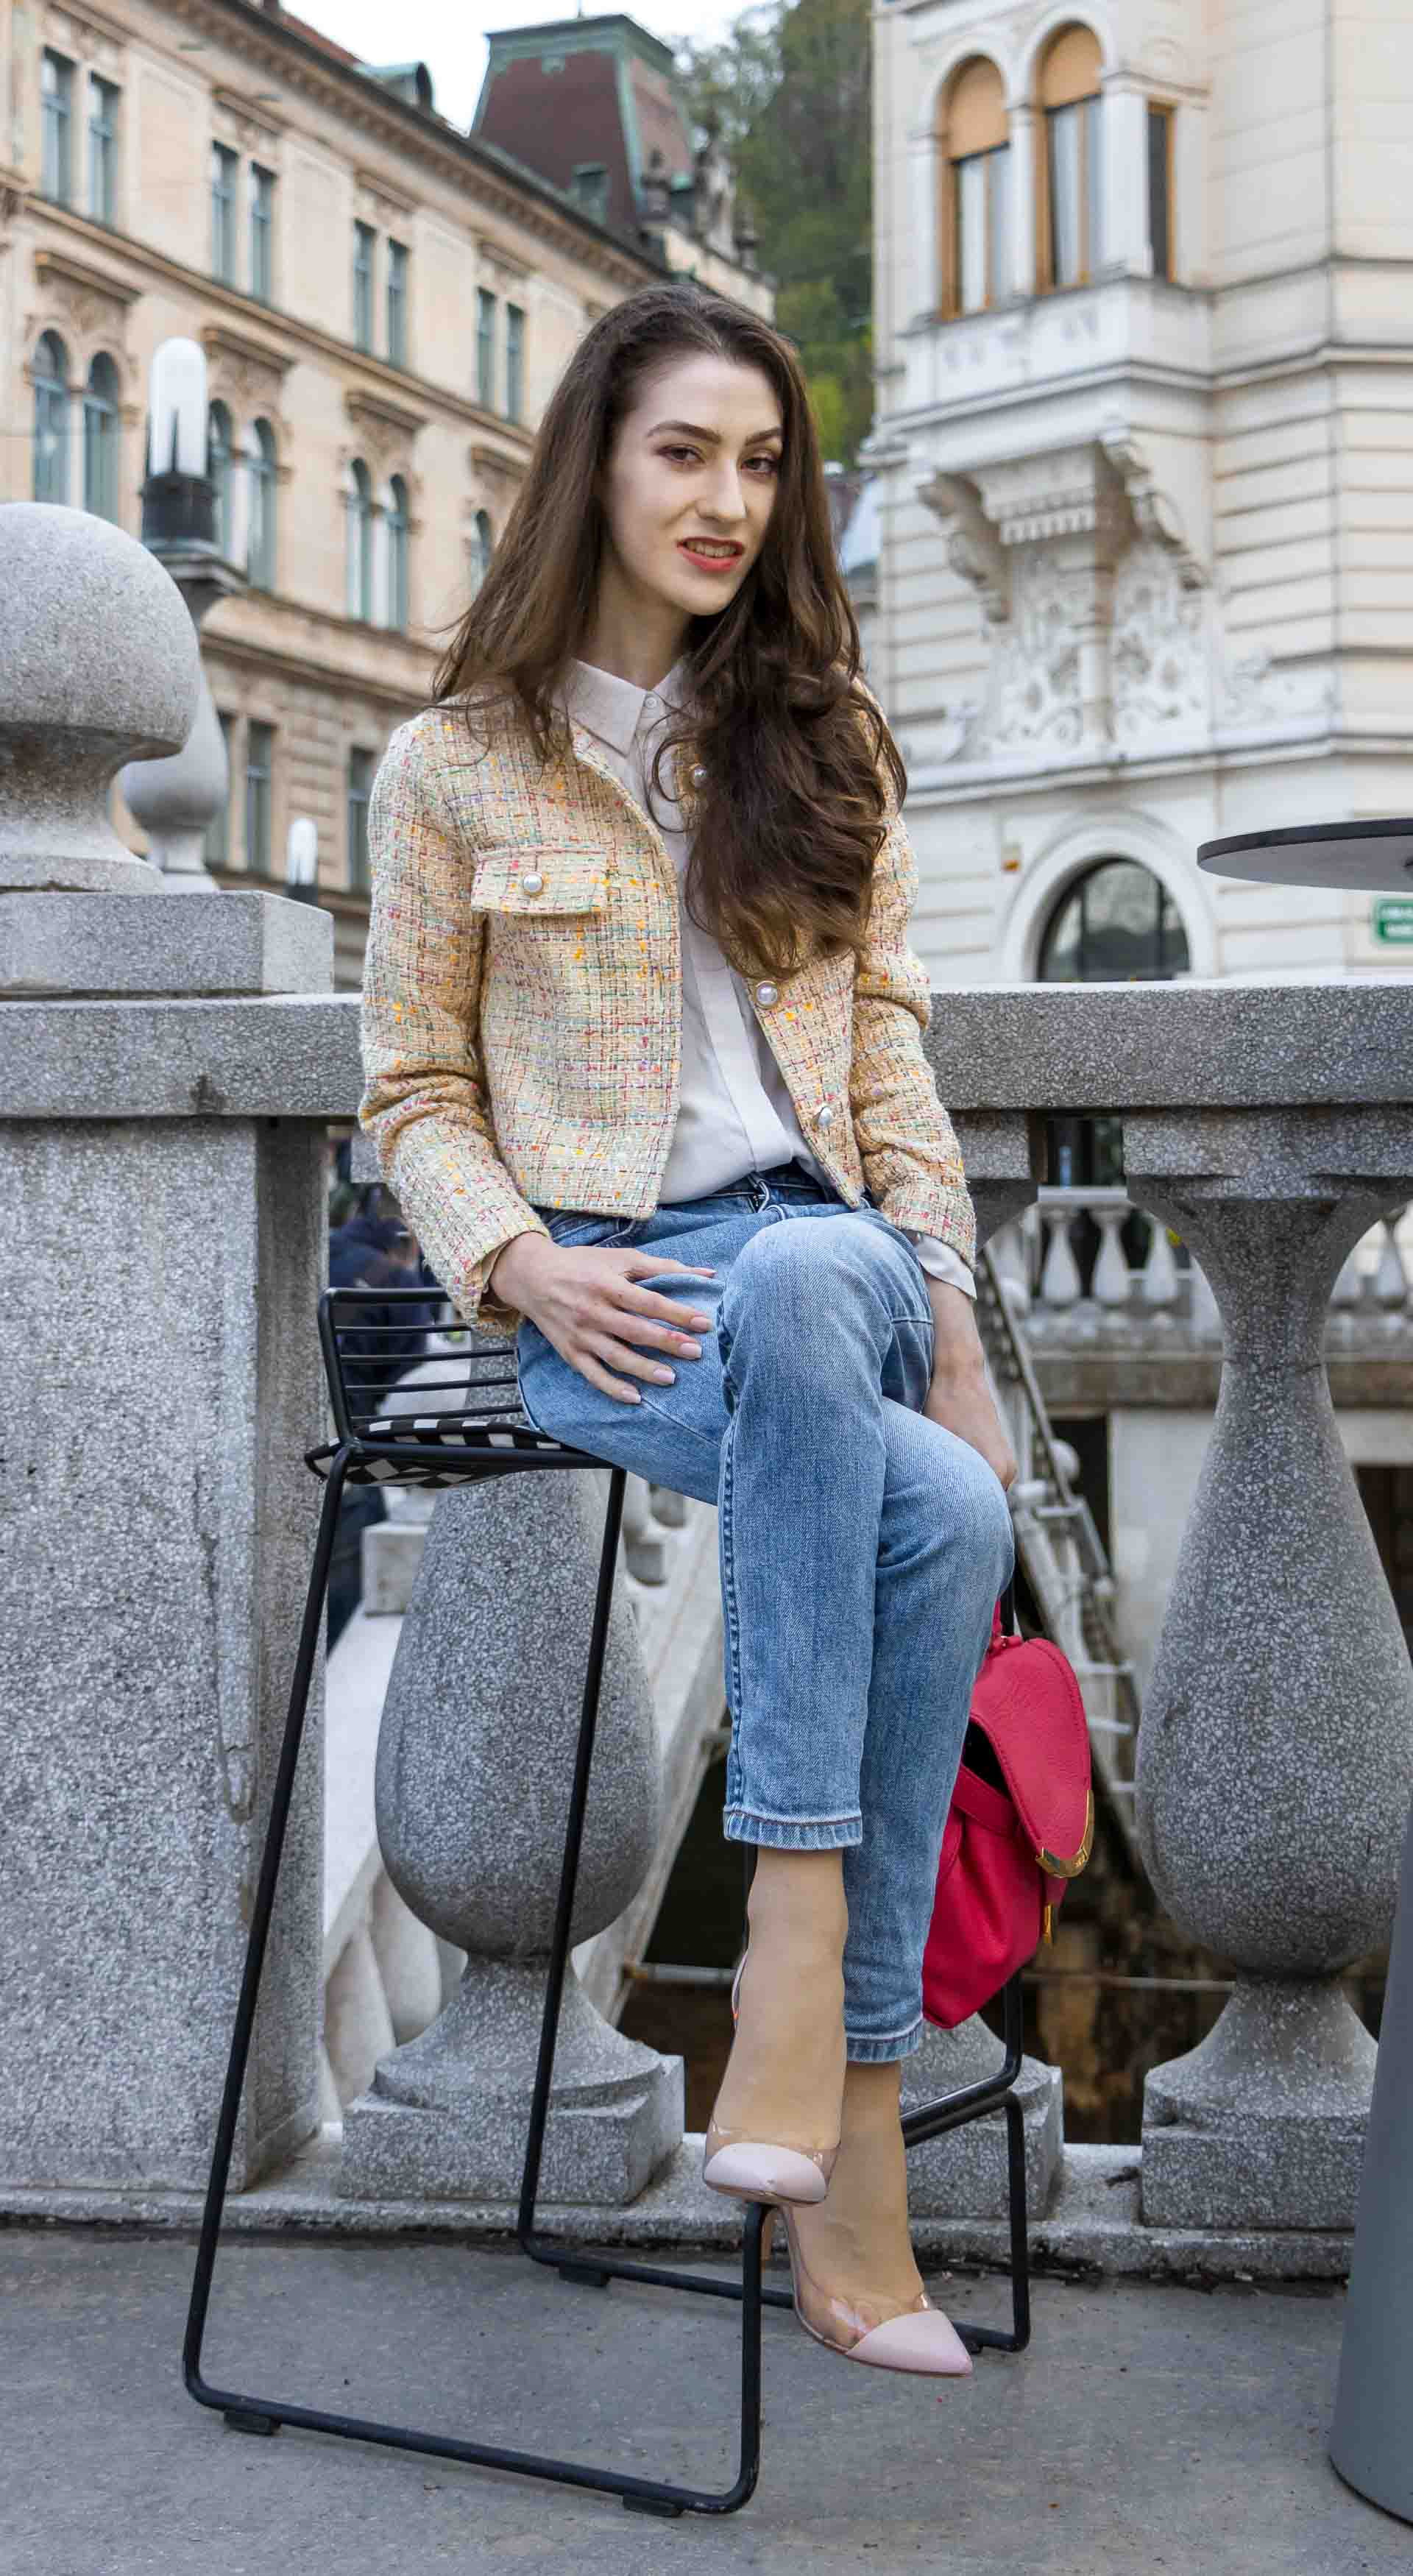 Veronika Lipar Fashion Blogger of Brunette from Wall Street wearing chic casual everyday spring outfit, the yellow tweed jacket from Storets, blue jeans from A.P.C., blush Gianvito Rossi plexi pumps, pink top handle bag and organza white sitting on a bar stole outdoors